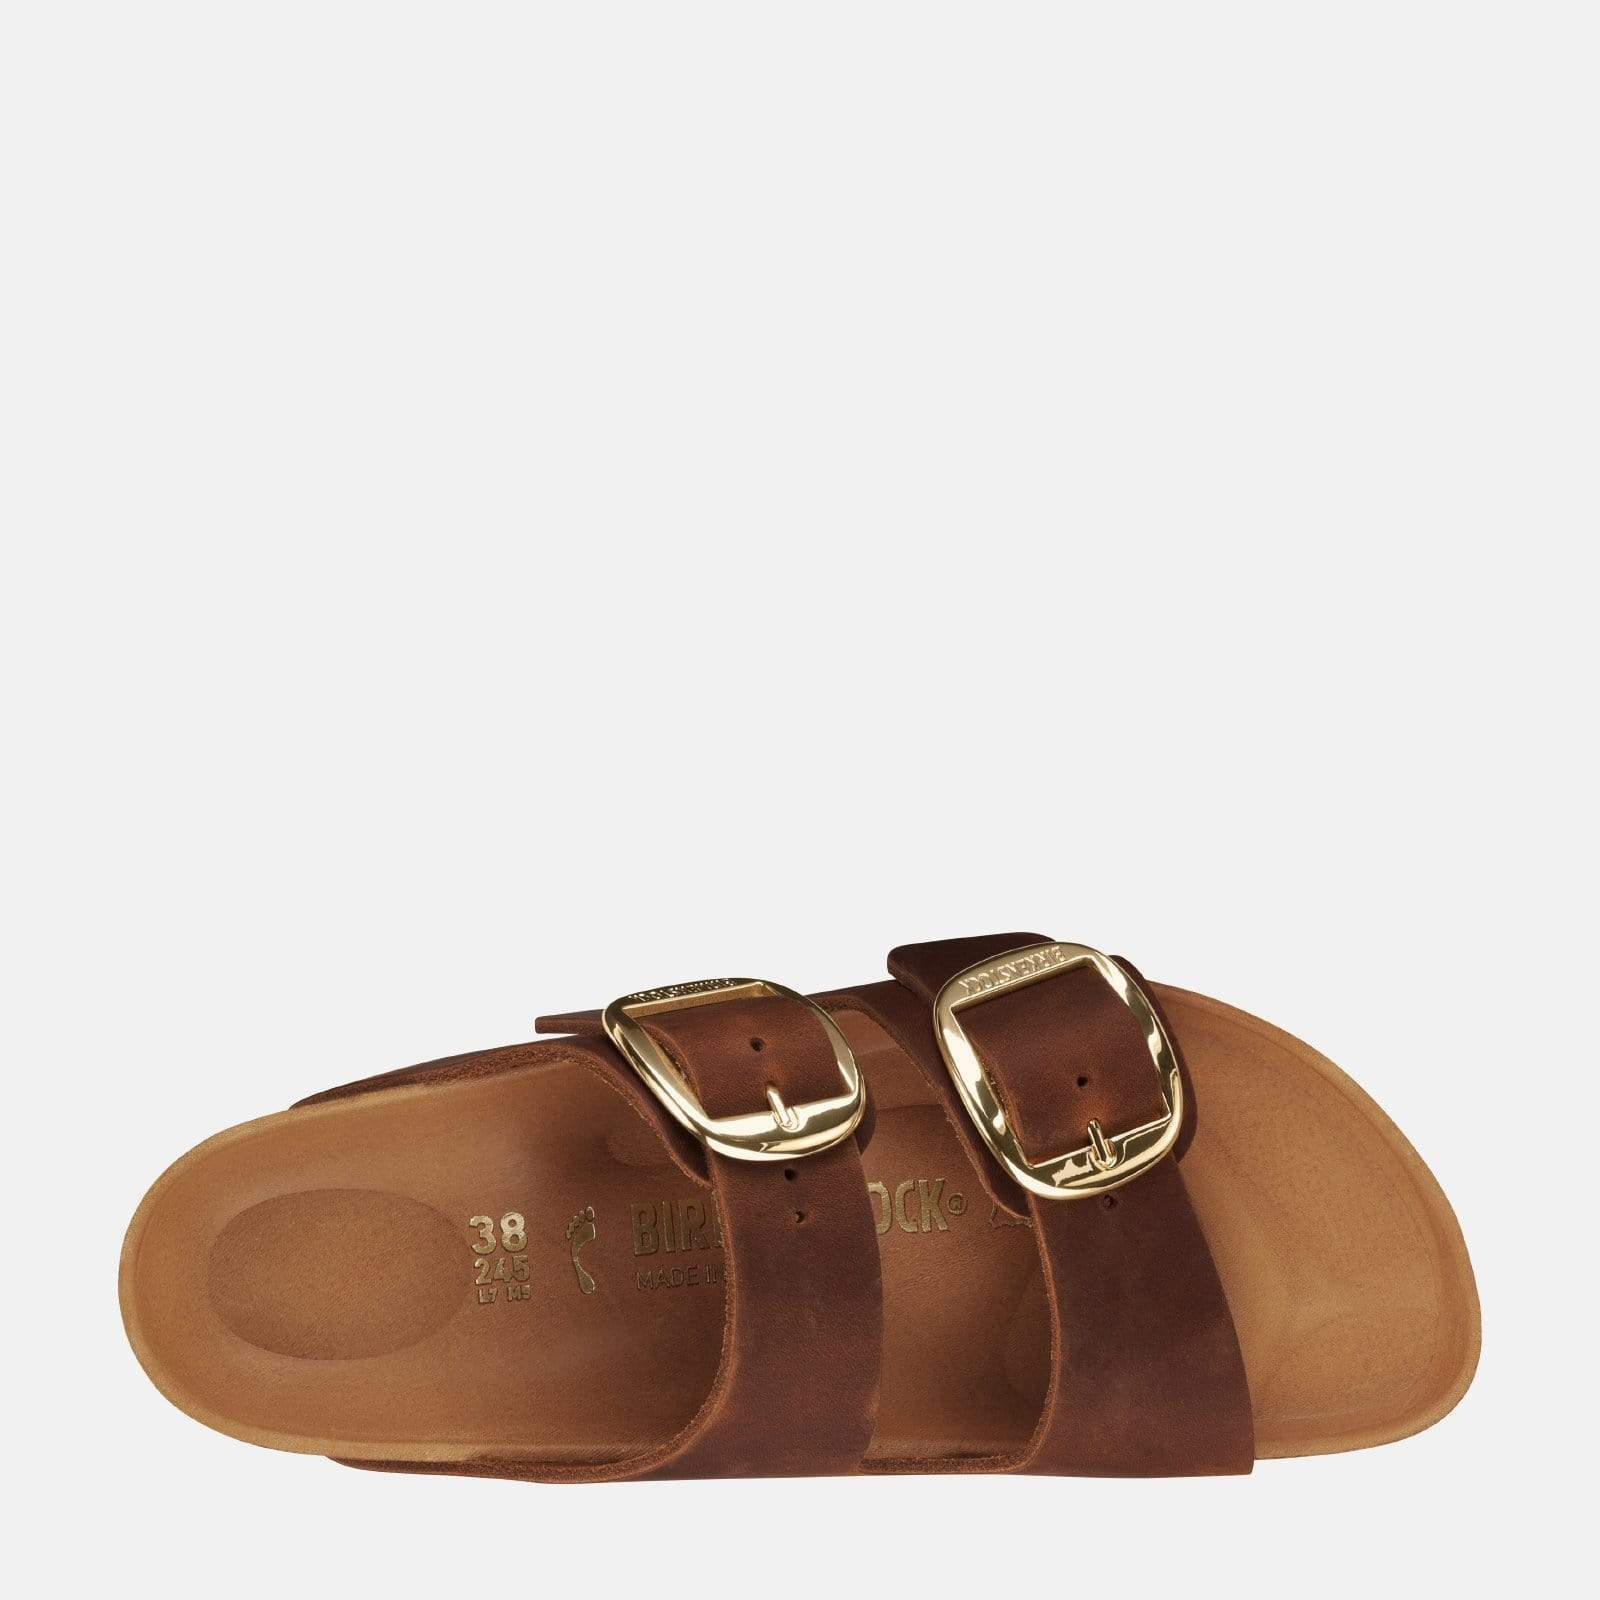 Birkenstock Footwear Arizona Big Buckle Narrow Fit Cognac 1011073